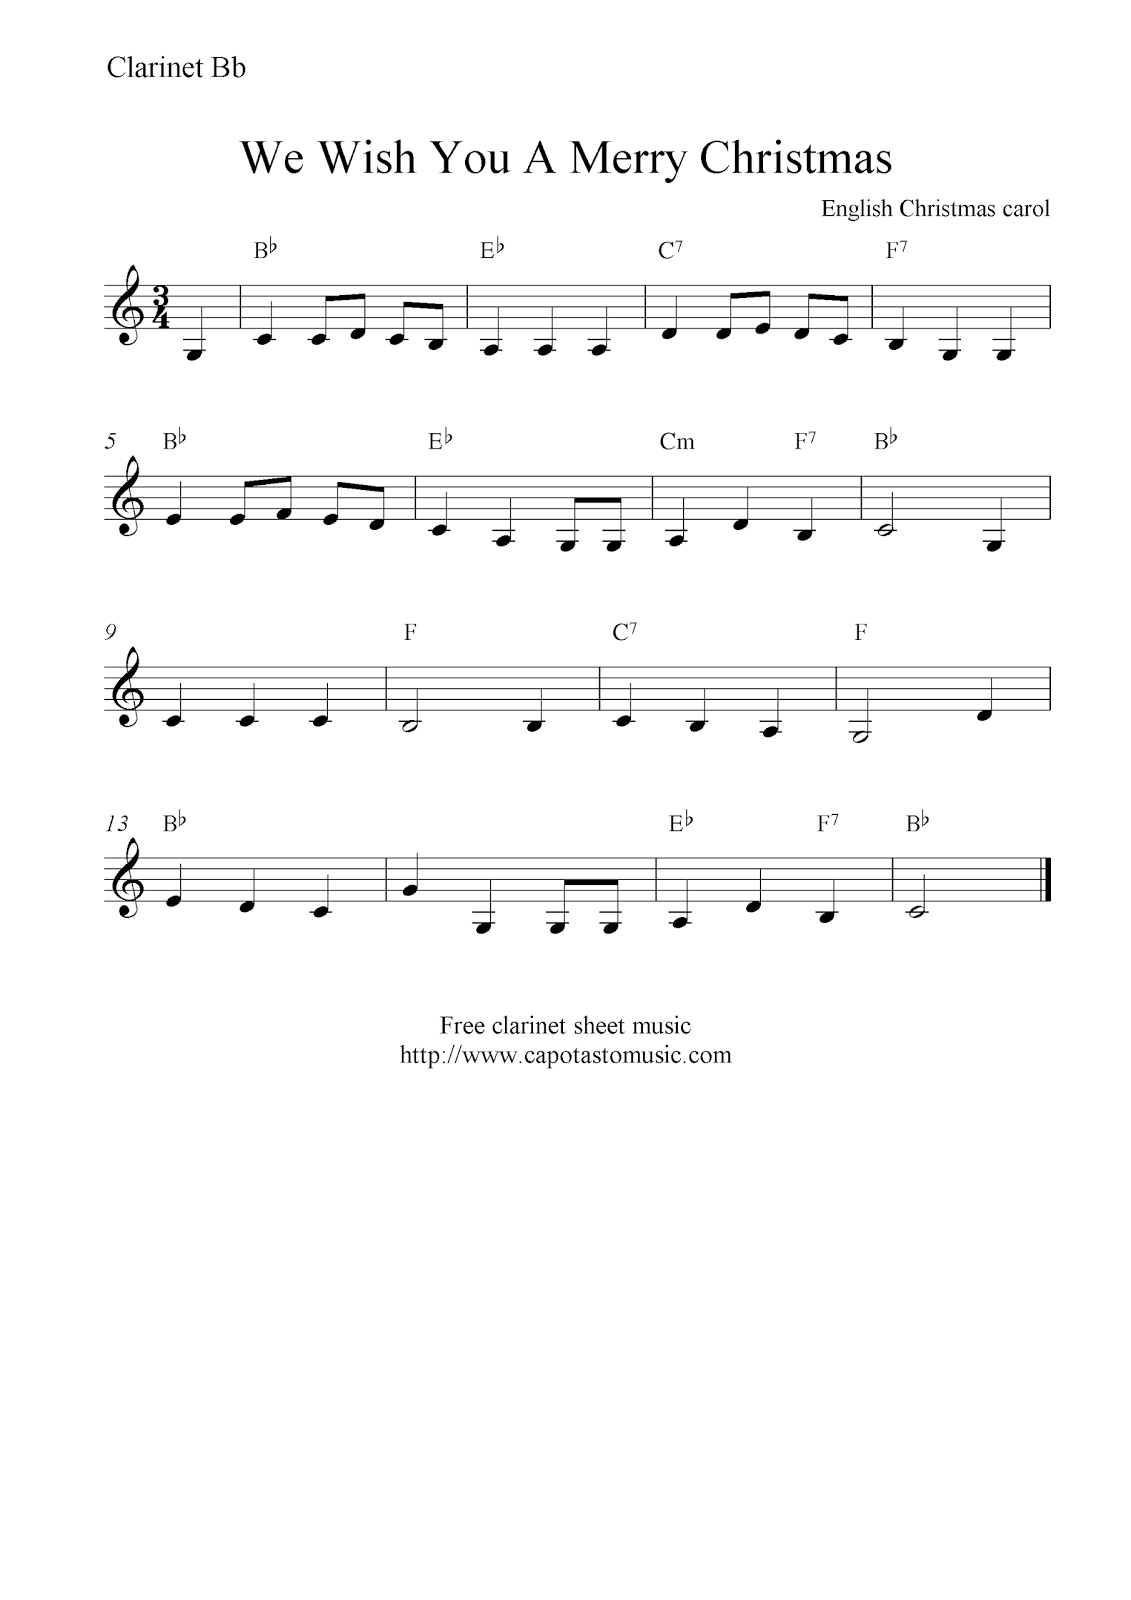 Wish You Merry Christmas Piano Notes.We Wish You A Merry Christmas Free Christmas Clarinet Sheet